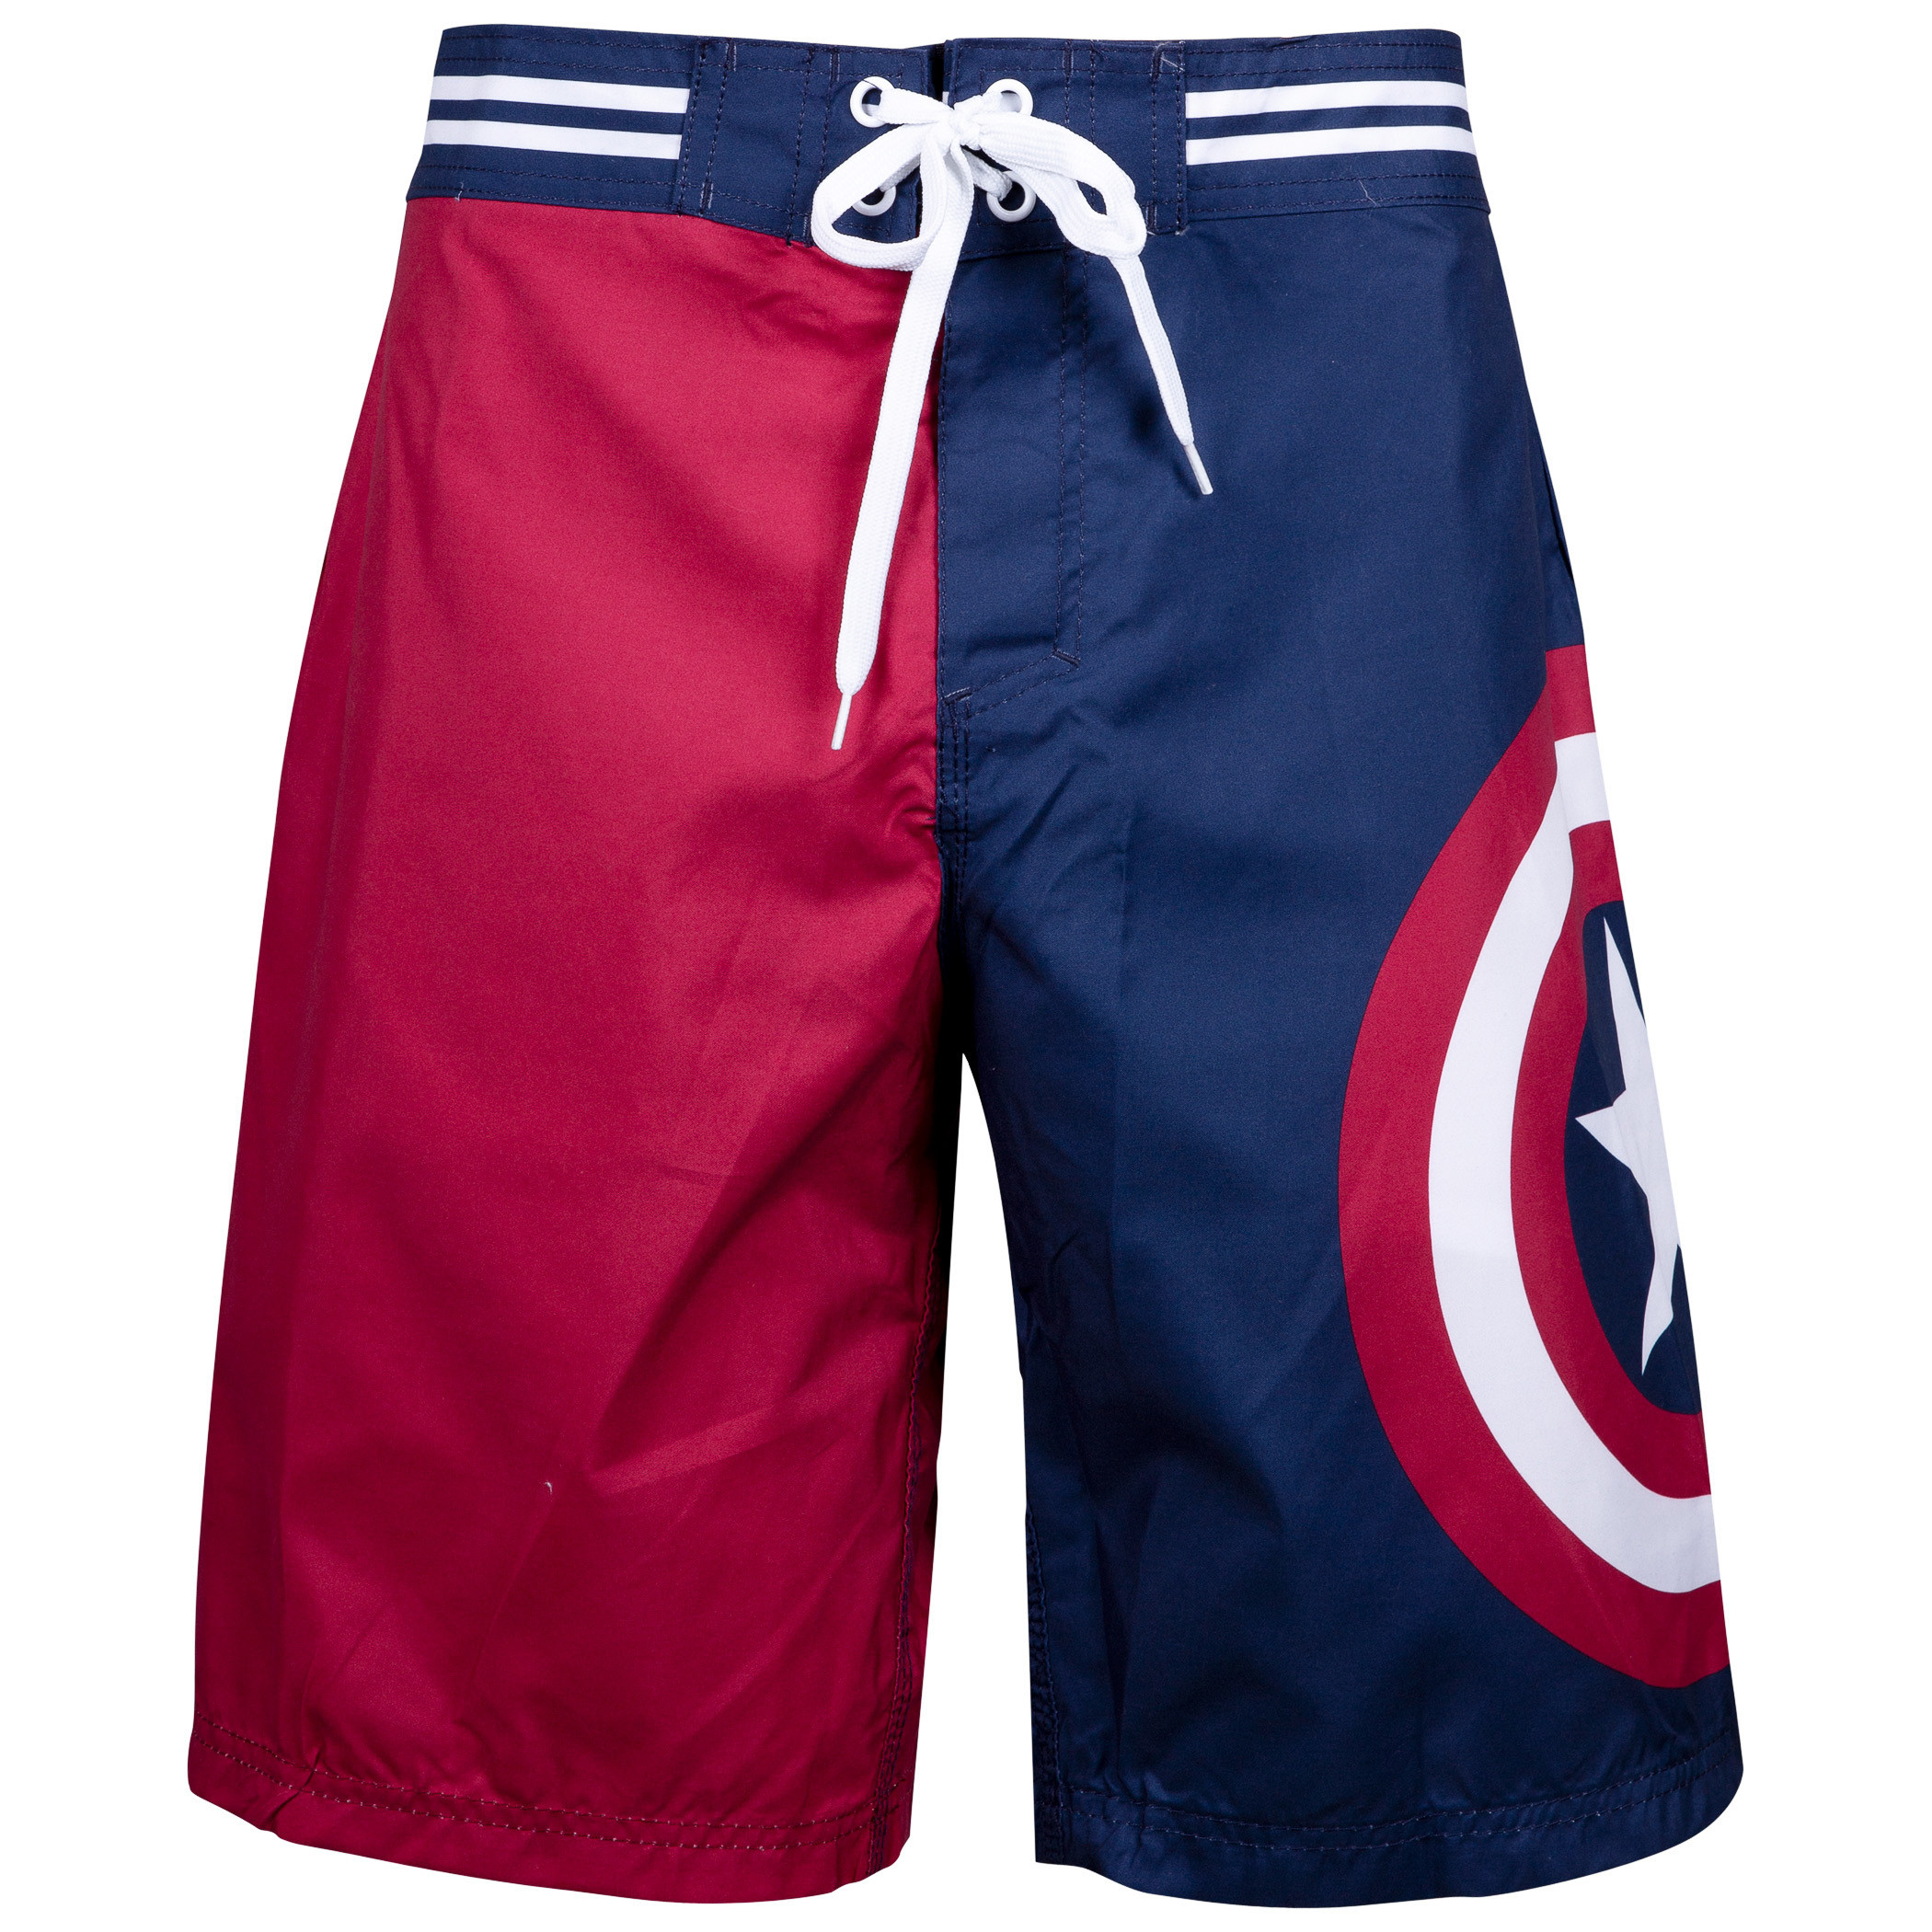 Captain America Swim Shorts